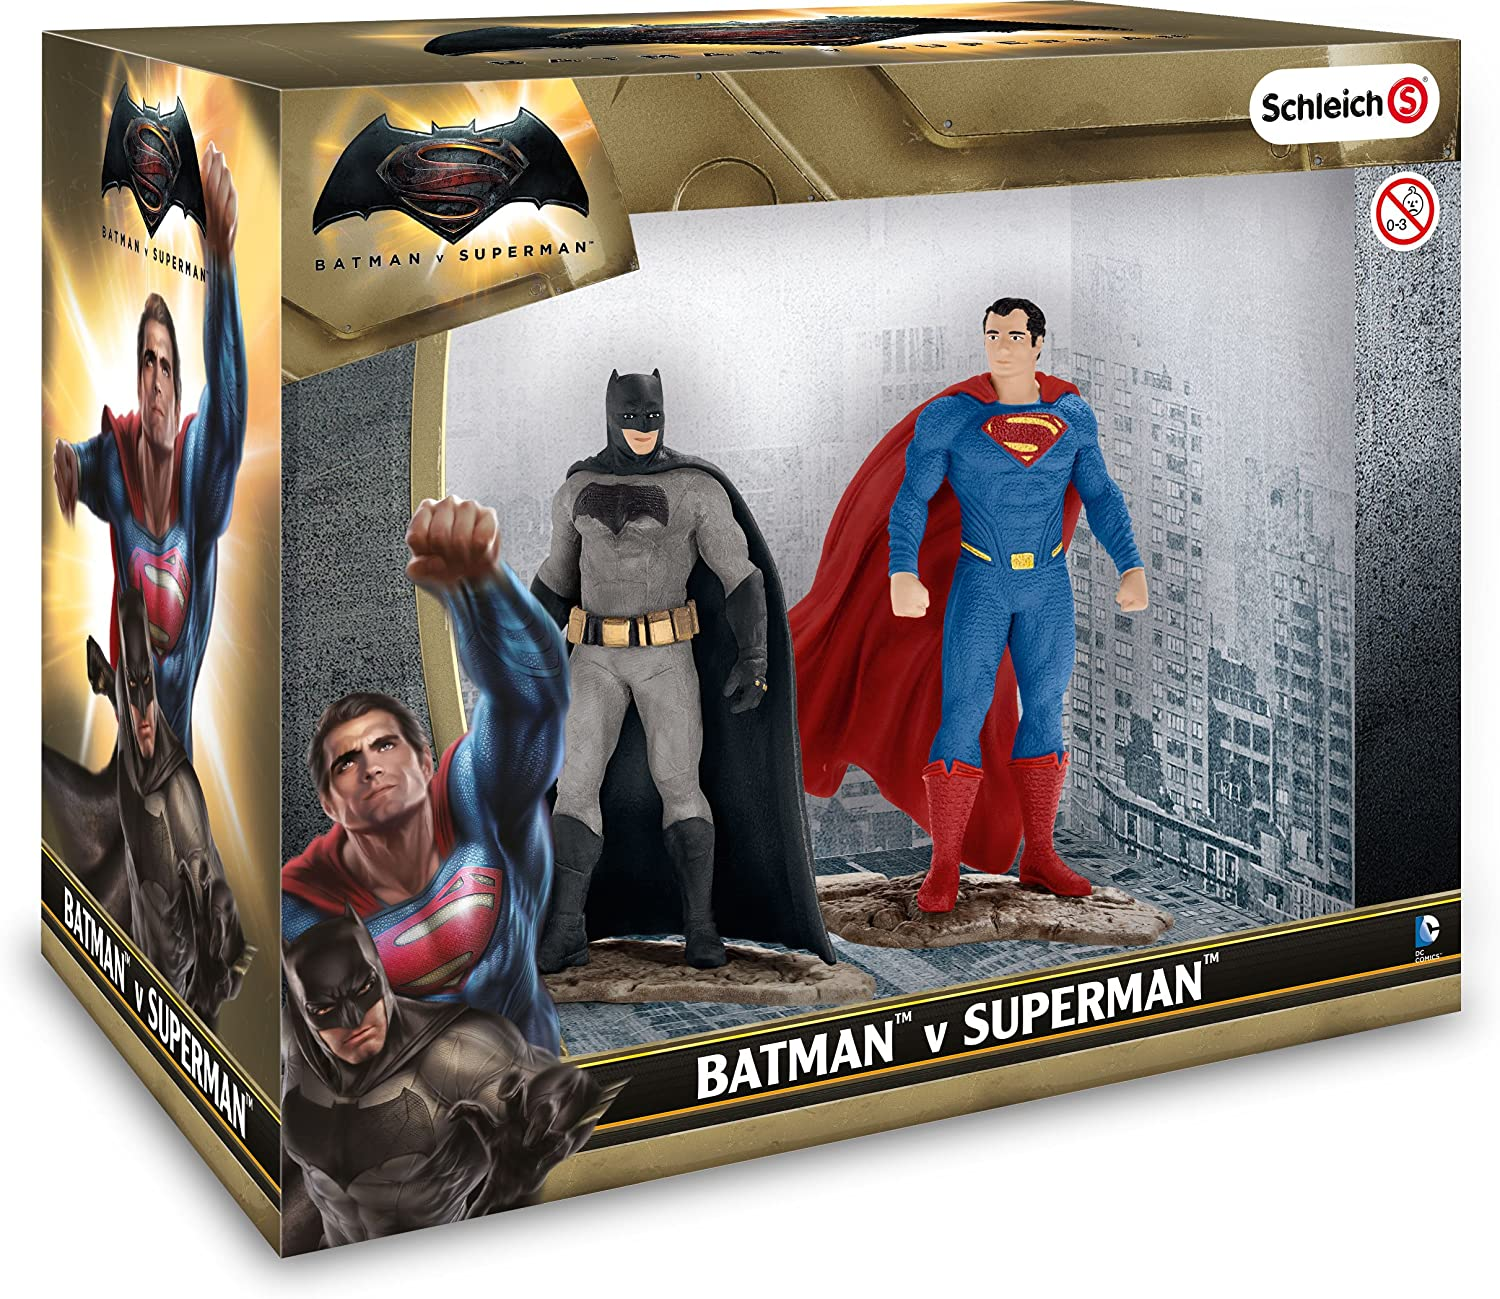 Schleich 22529 Batman V Superman Justice League Scenery Pack Figure Set-Nouveau